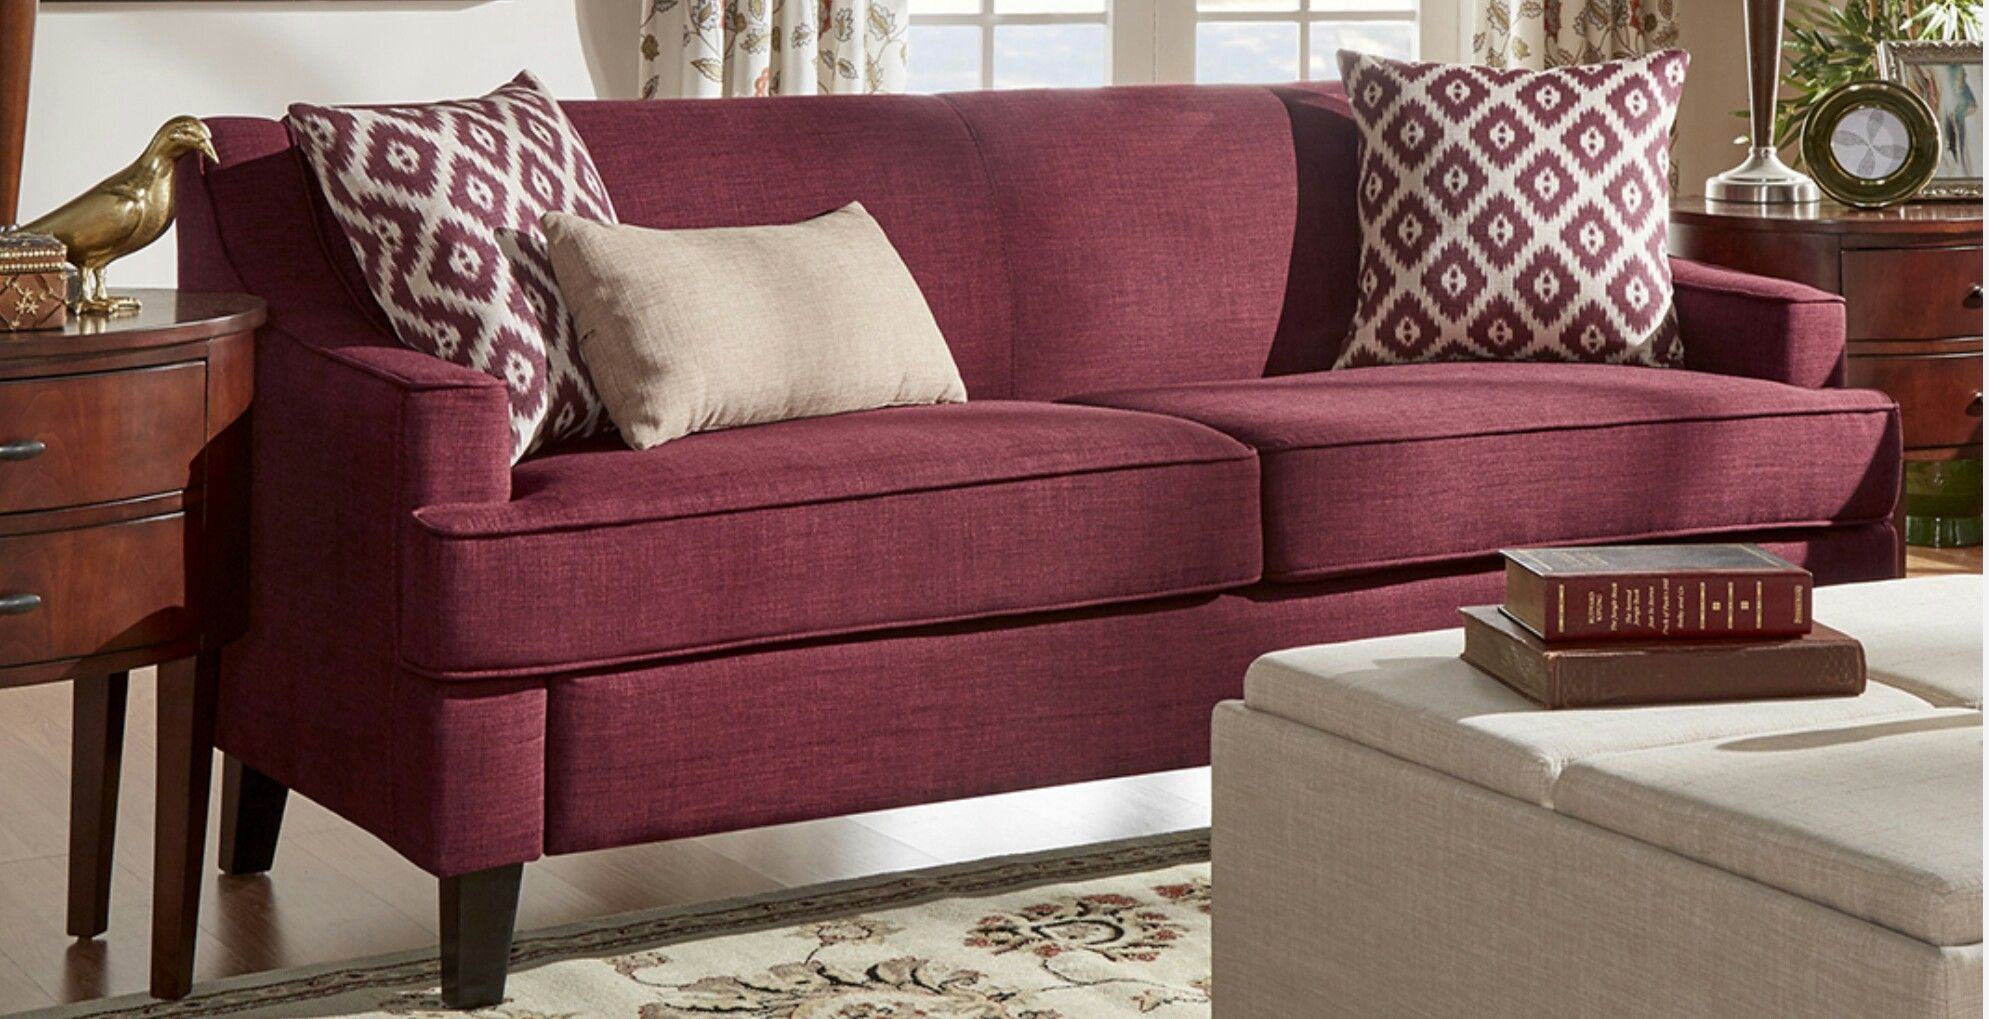 Burgundy Sofa Apartment Ideas Pinterest